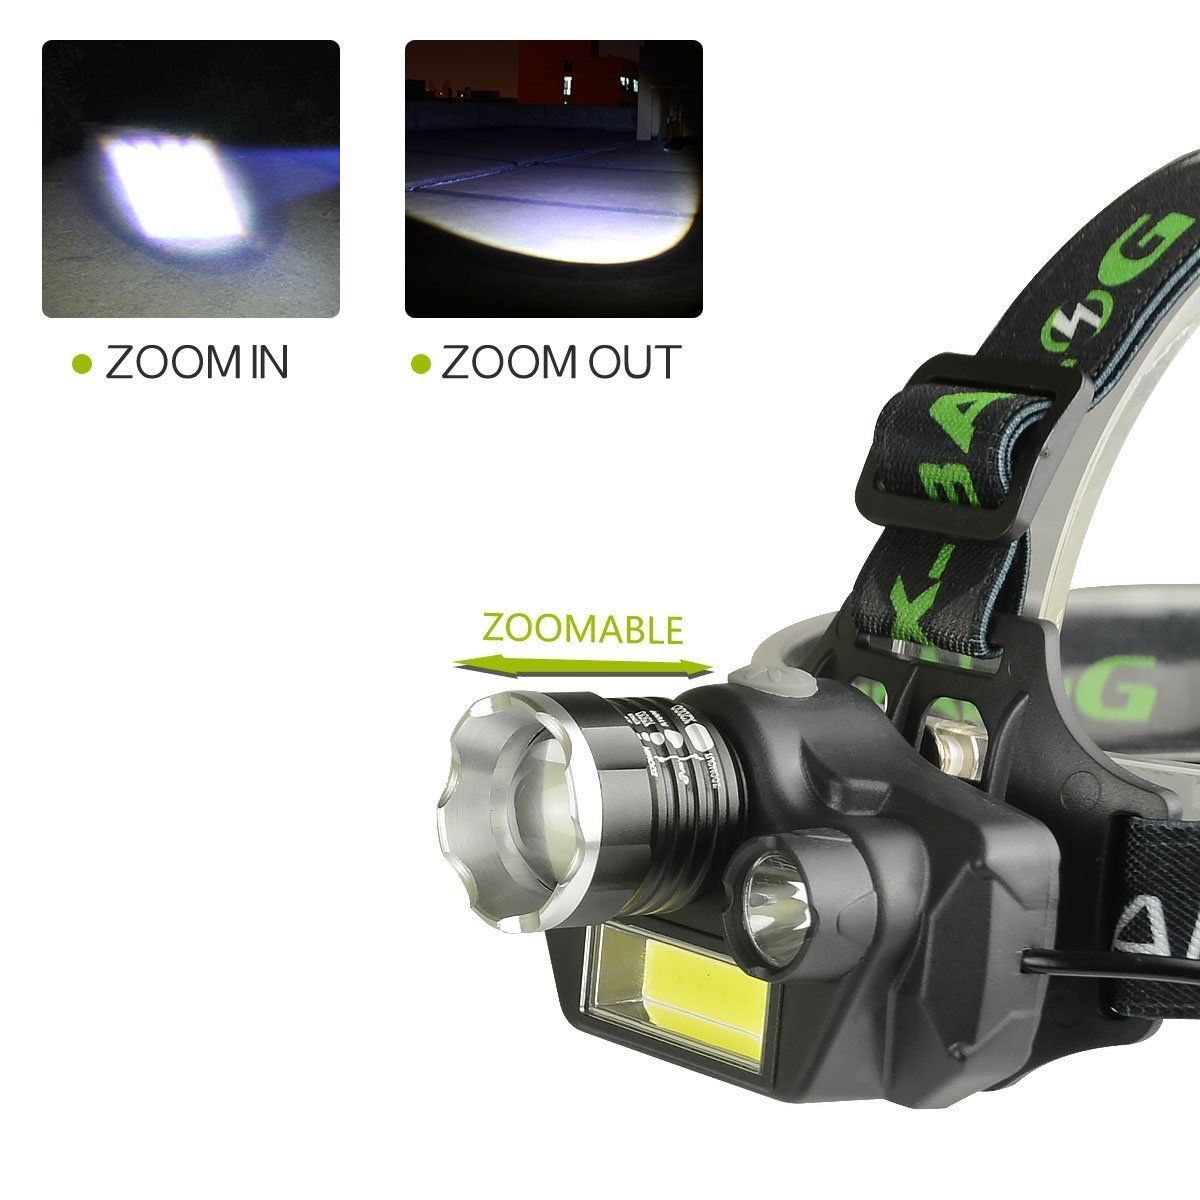 LED Headlamp Flashlight, USB Rechargeable LED Headlamp- Waterproof & Comfortable Headlight, Battery Powered Helmet Light, 8000 Lumen 4 Light 5 Modes Super Bright by KAILEDI. (Image #4)